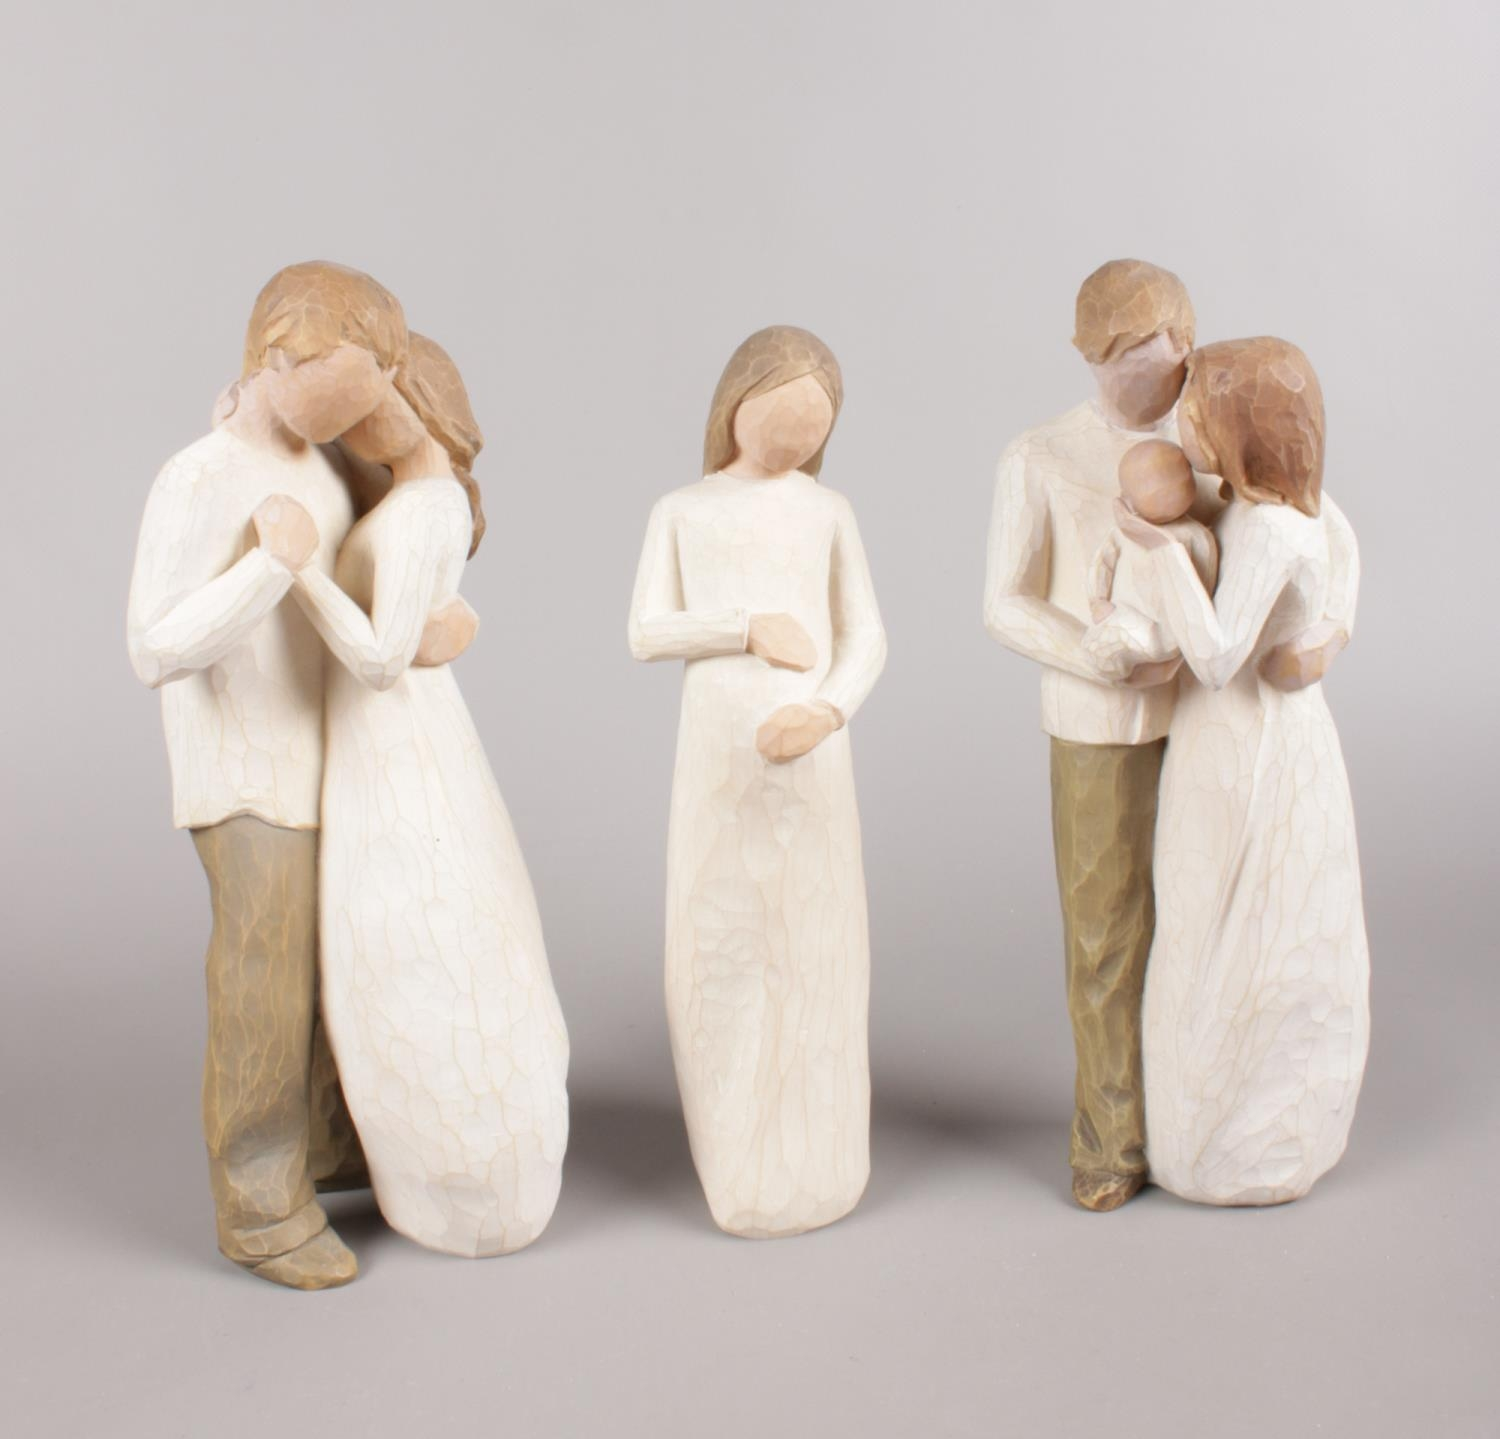 A Trio of Willow Tree Figures, including 'Our Gift - 2006', 'Cherish - 2002' and 'Promise - 2003'.